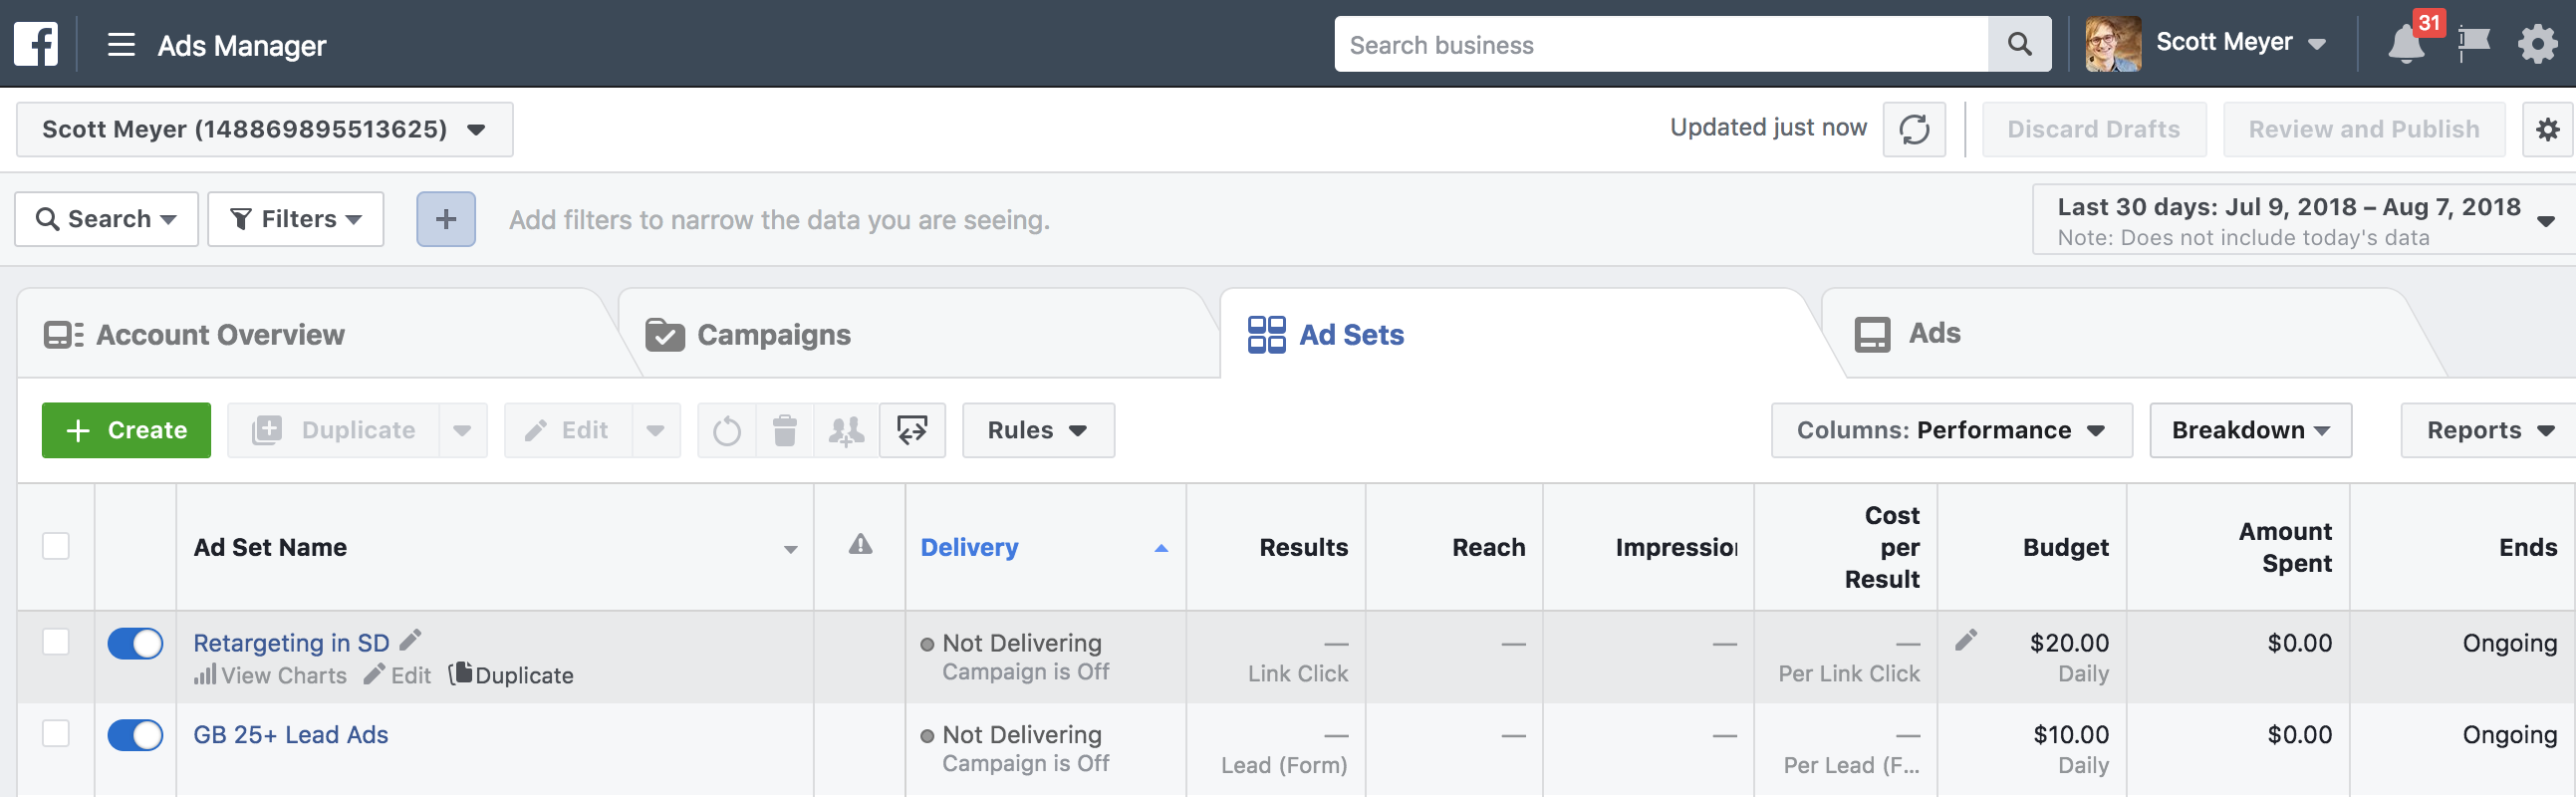 duplicating ads on facebook